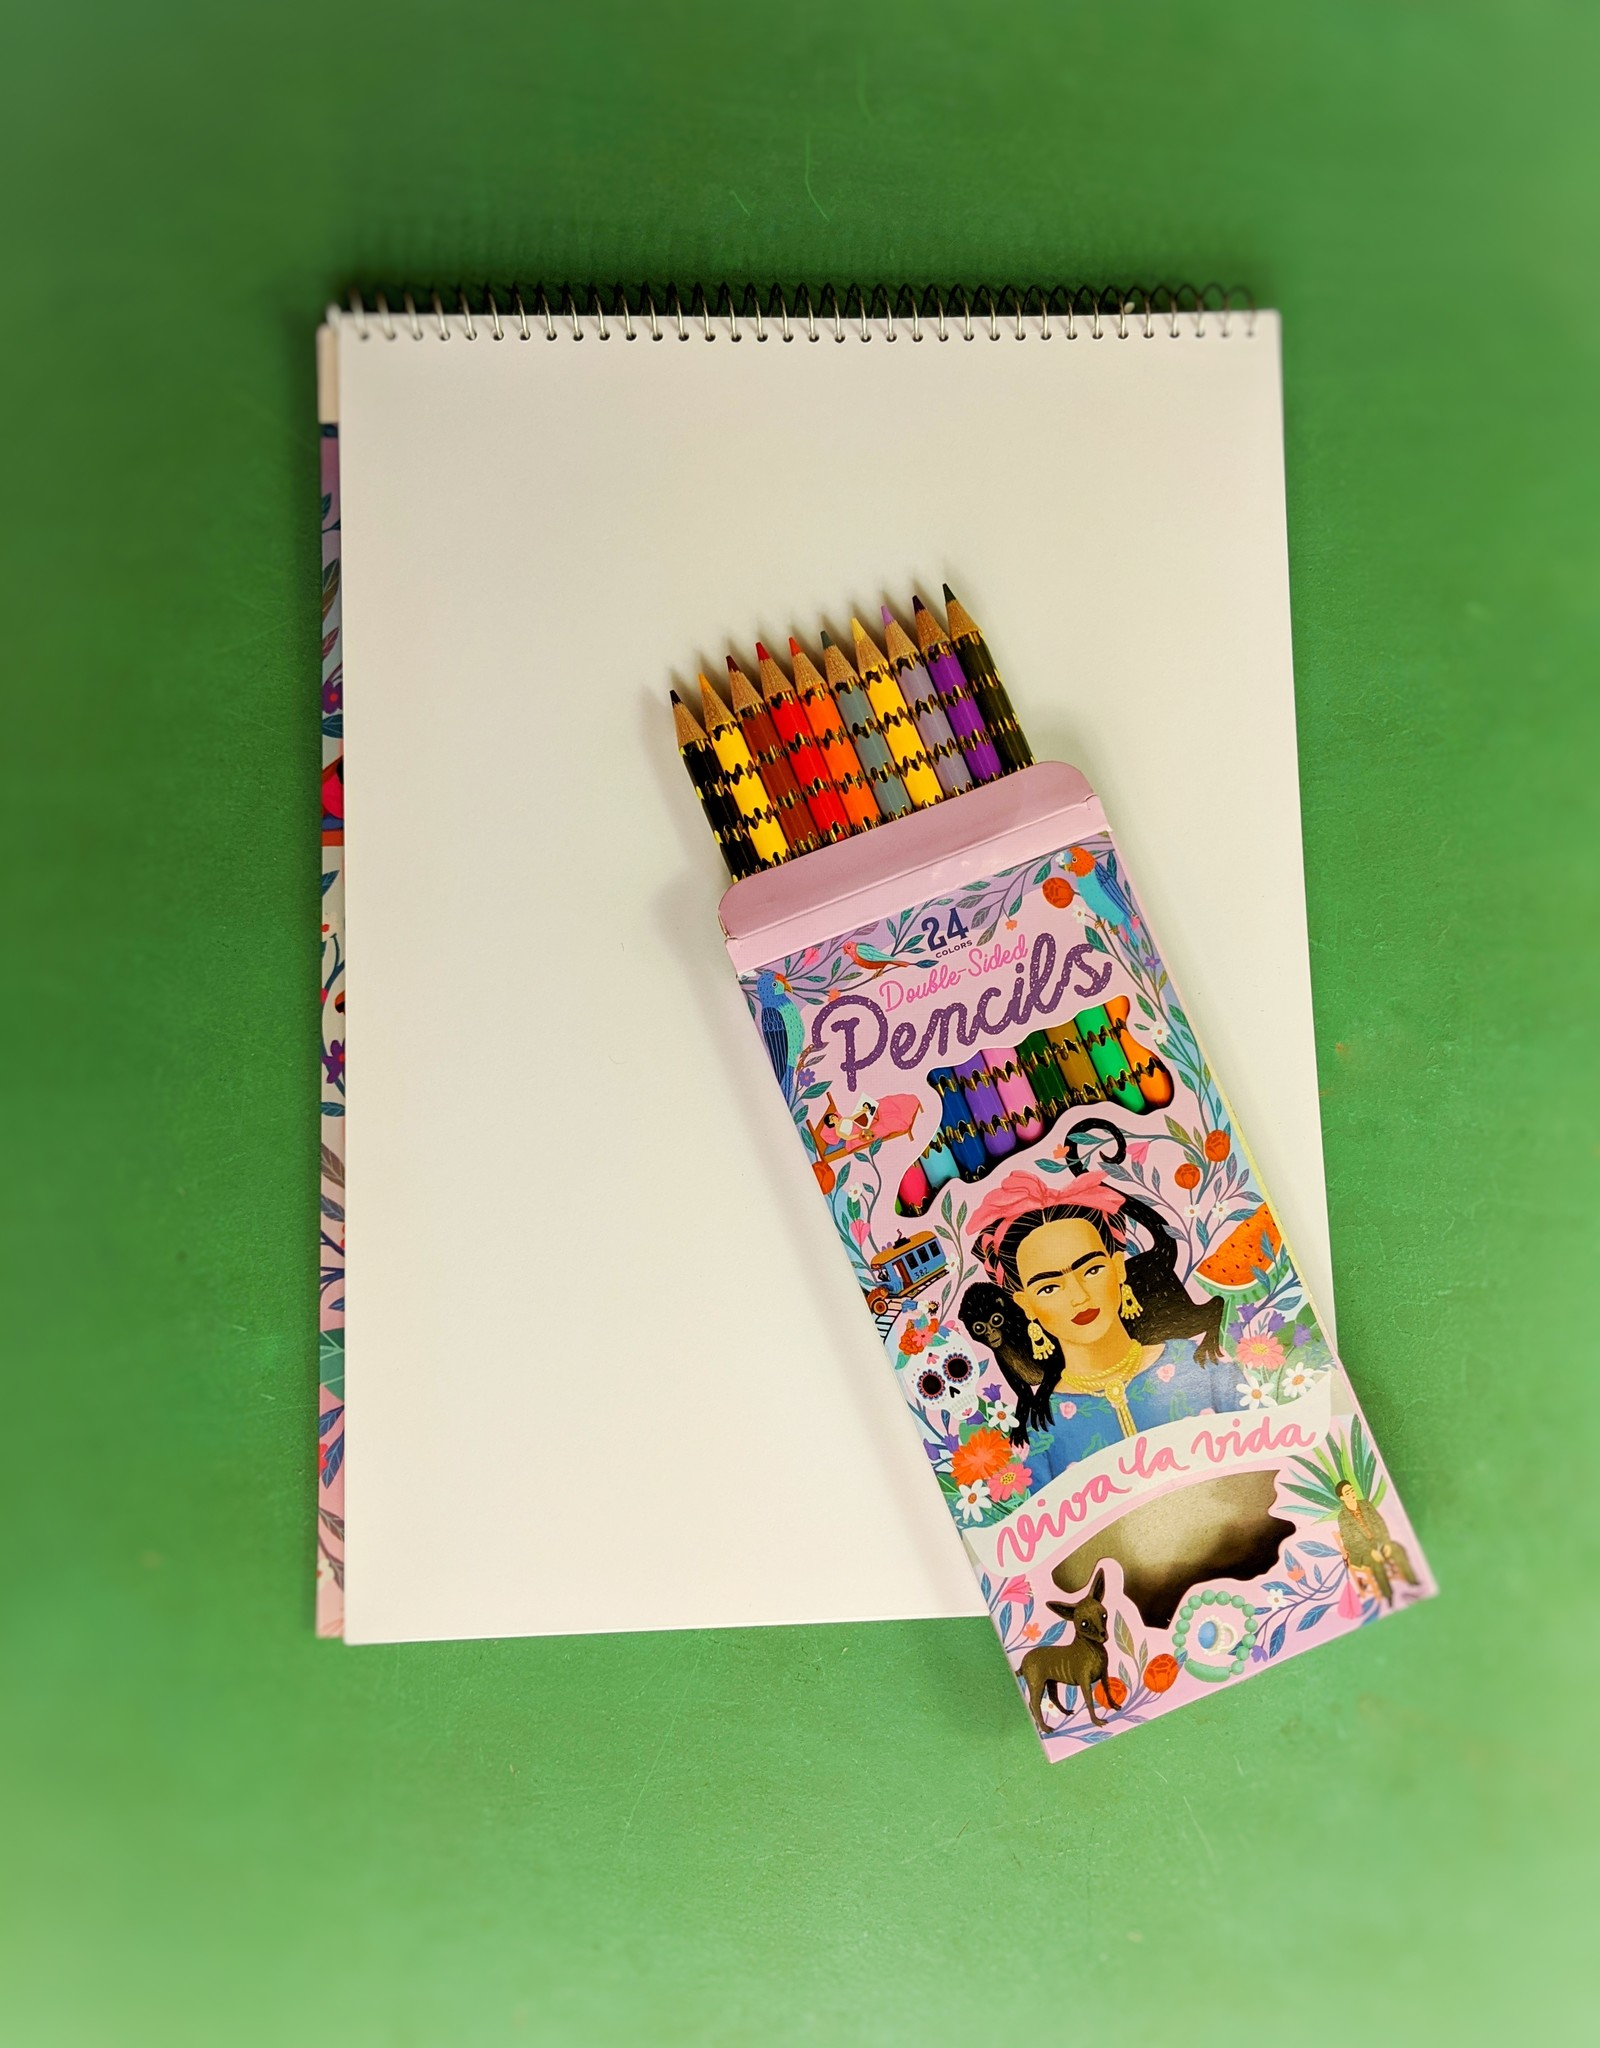 Eeboo Viva la Vida Double Sided Pencils